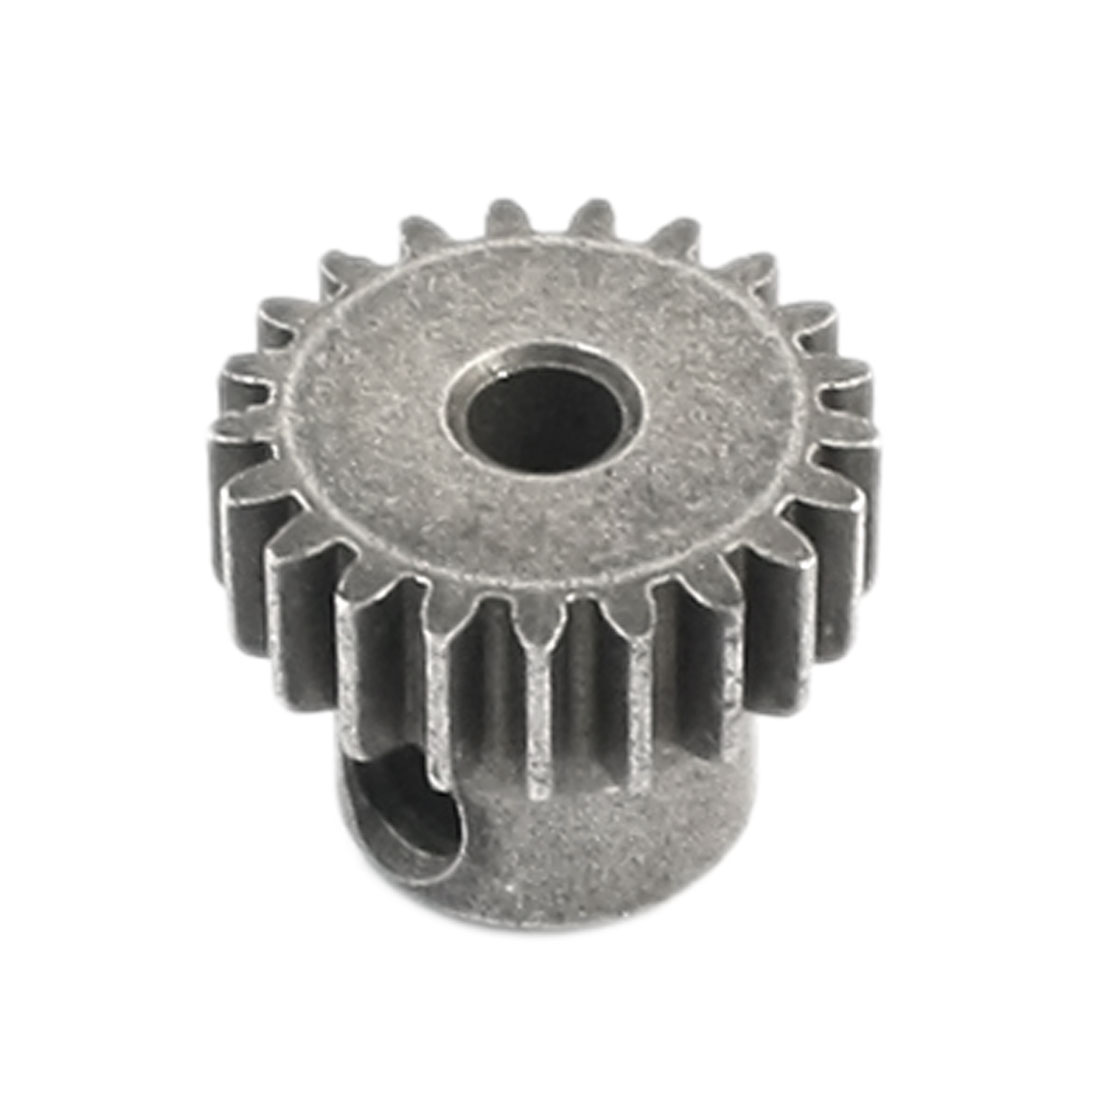 Gray Steel 11181 21T Motor Gear 11mmx14mm for 94111/94123 RC 1/10 Car